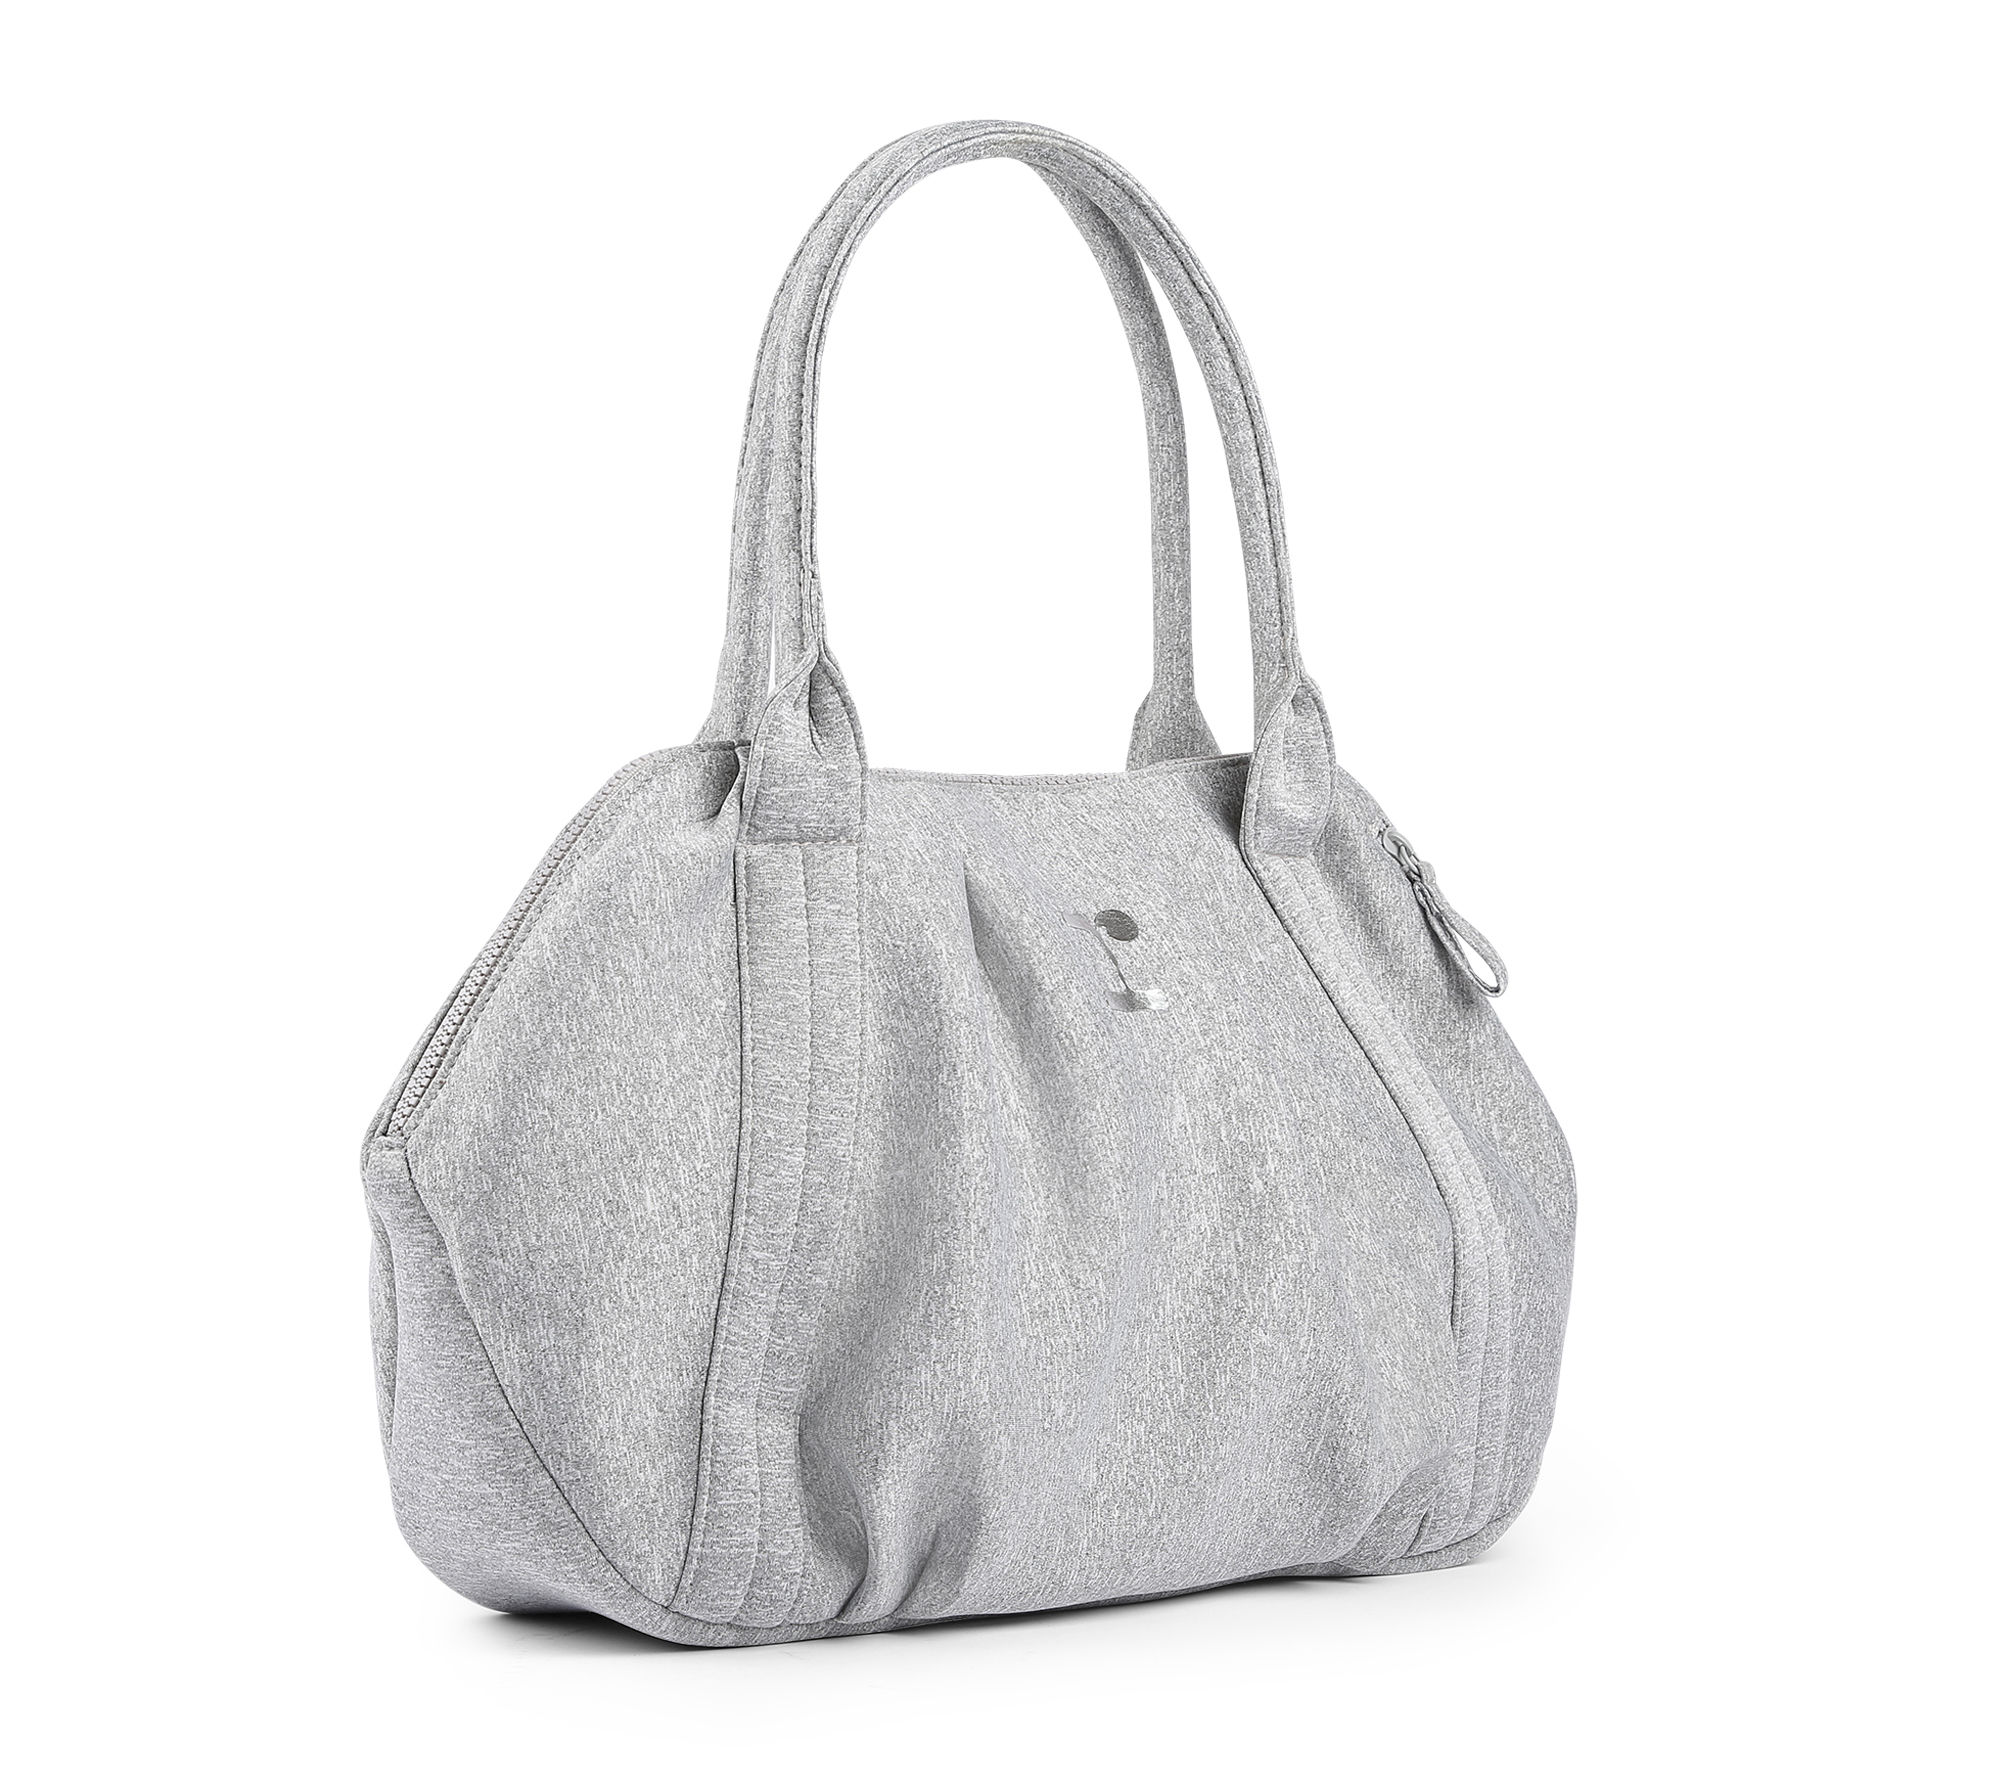 Valse Ladies Handbag